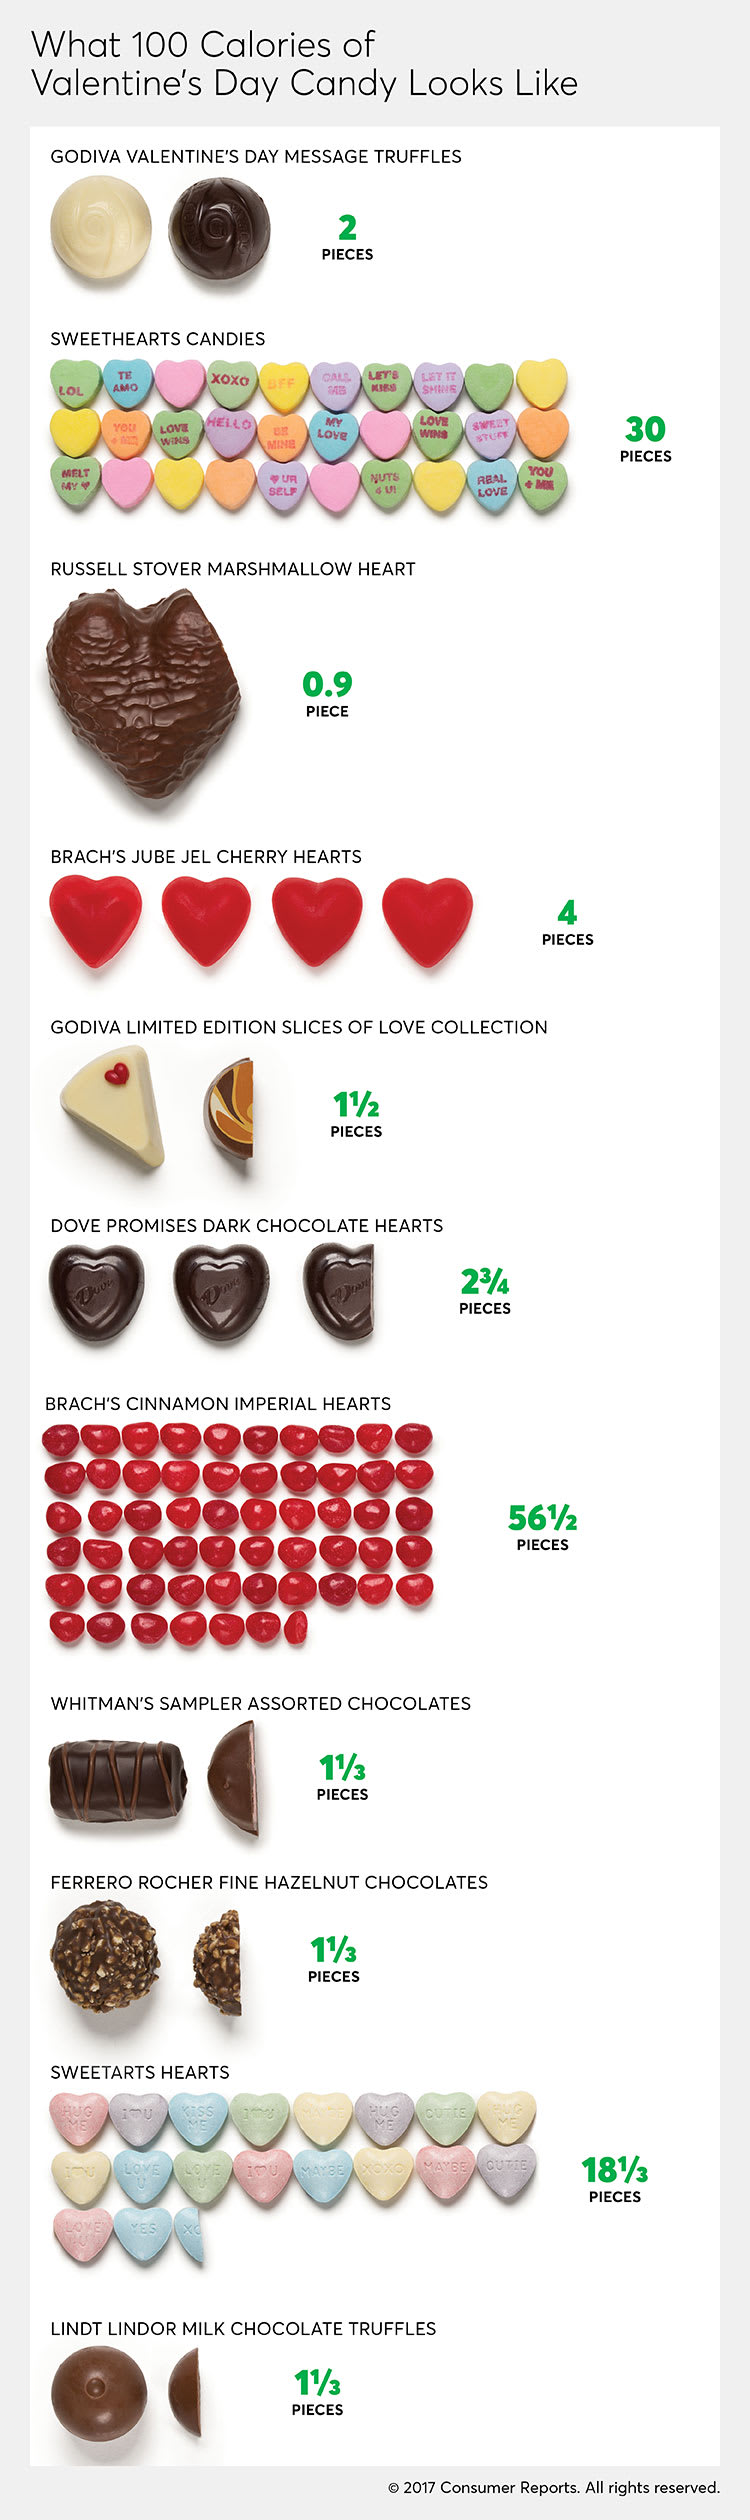 What 100 calories of Valentine's Day candy looks like.